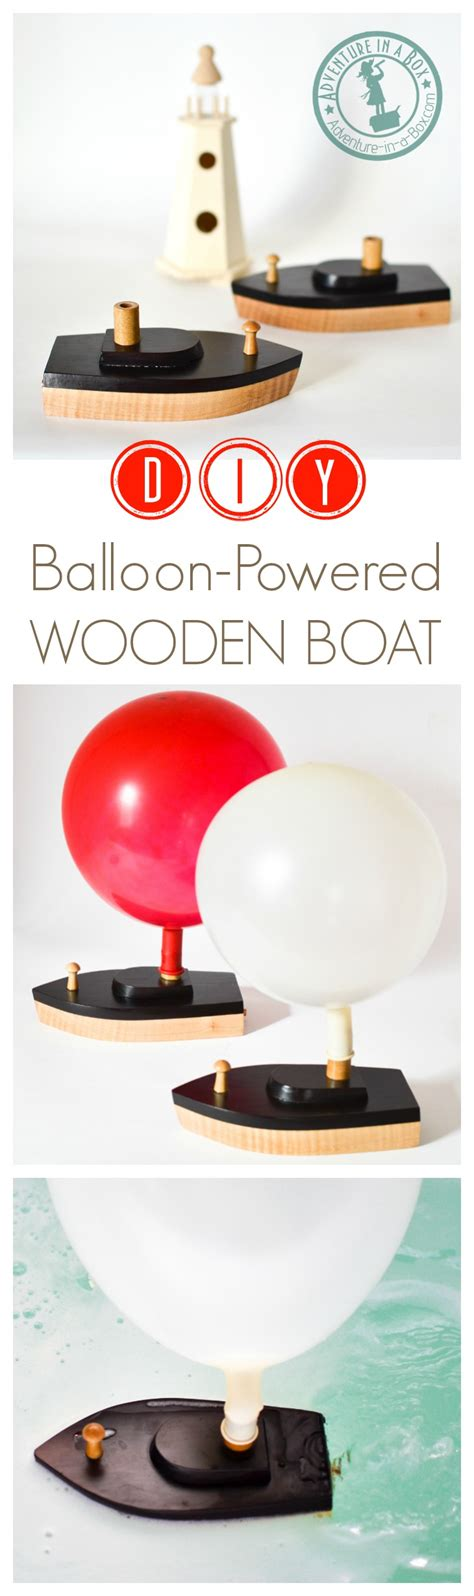 toy boat adventure diy balloon powered wooden toy boat adventure in a box